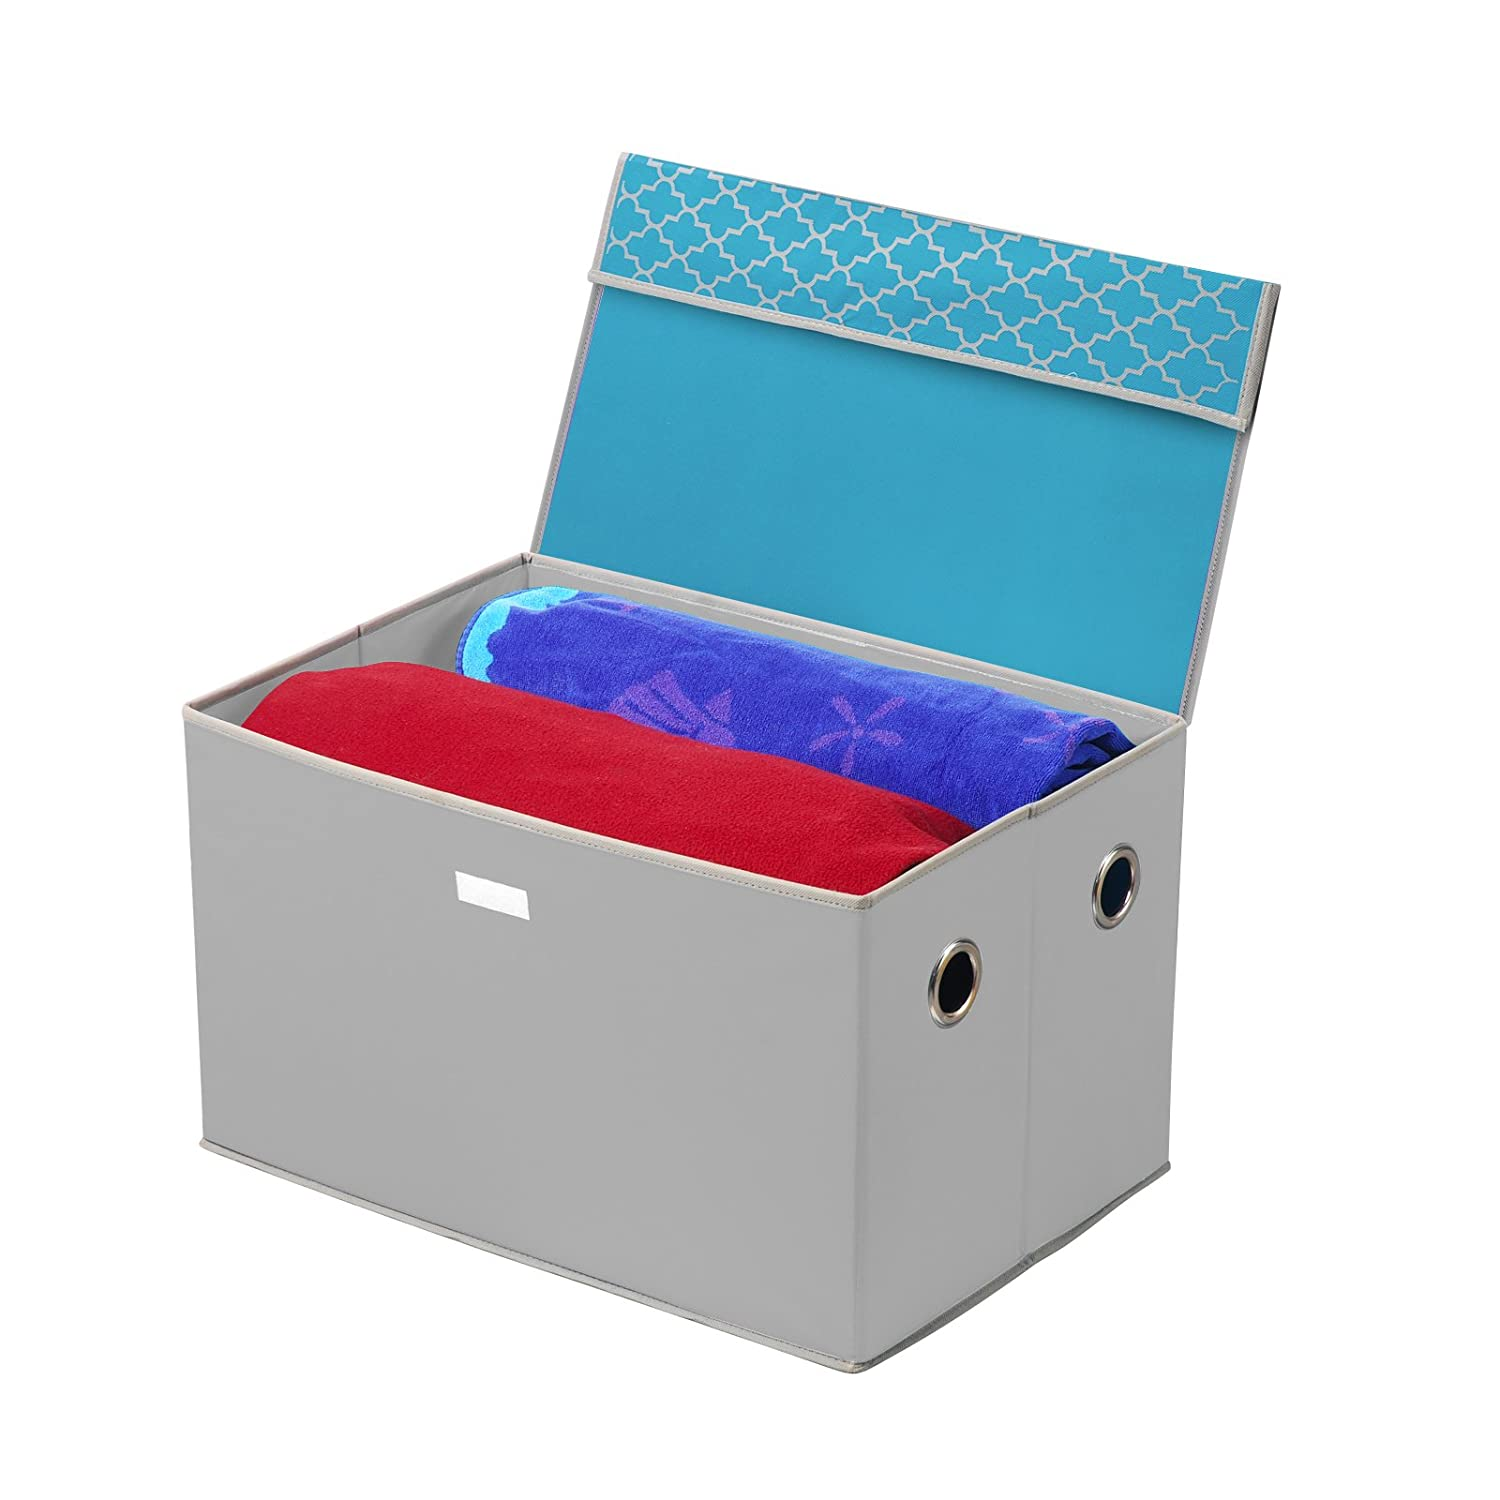 Amazon.com: Collapsible Storage Trunk   Turquoise/Gray: Kitchen U0026 Dining